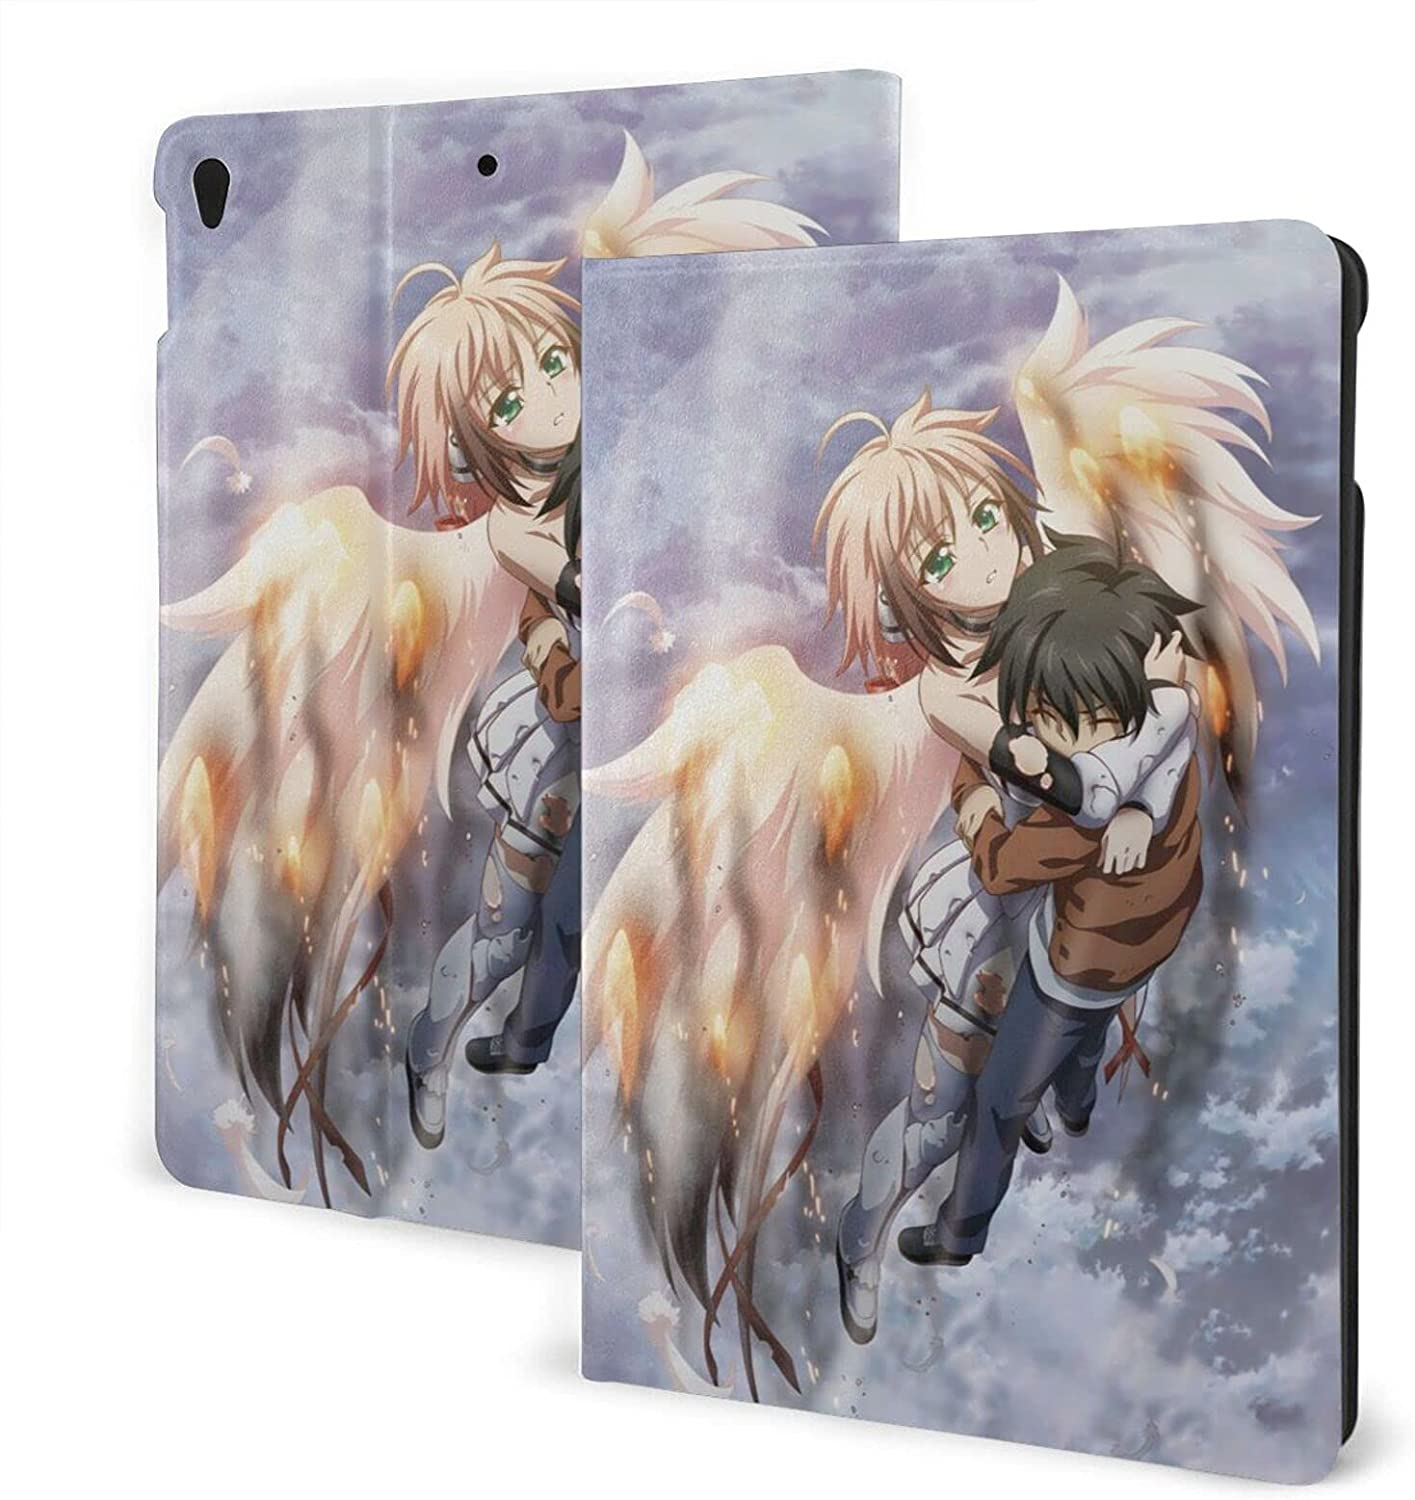 Heaven's Lost Property Ikaros IPad Max 59% OFF 10.5inch Case air3 pro Brand new